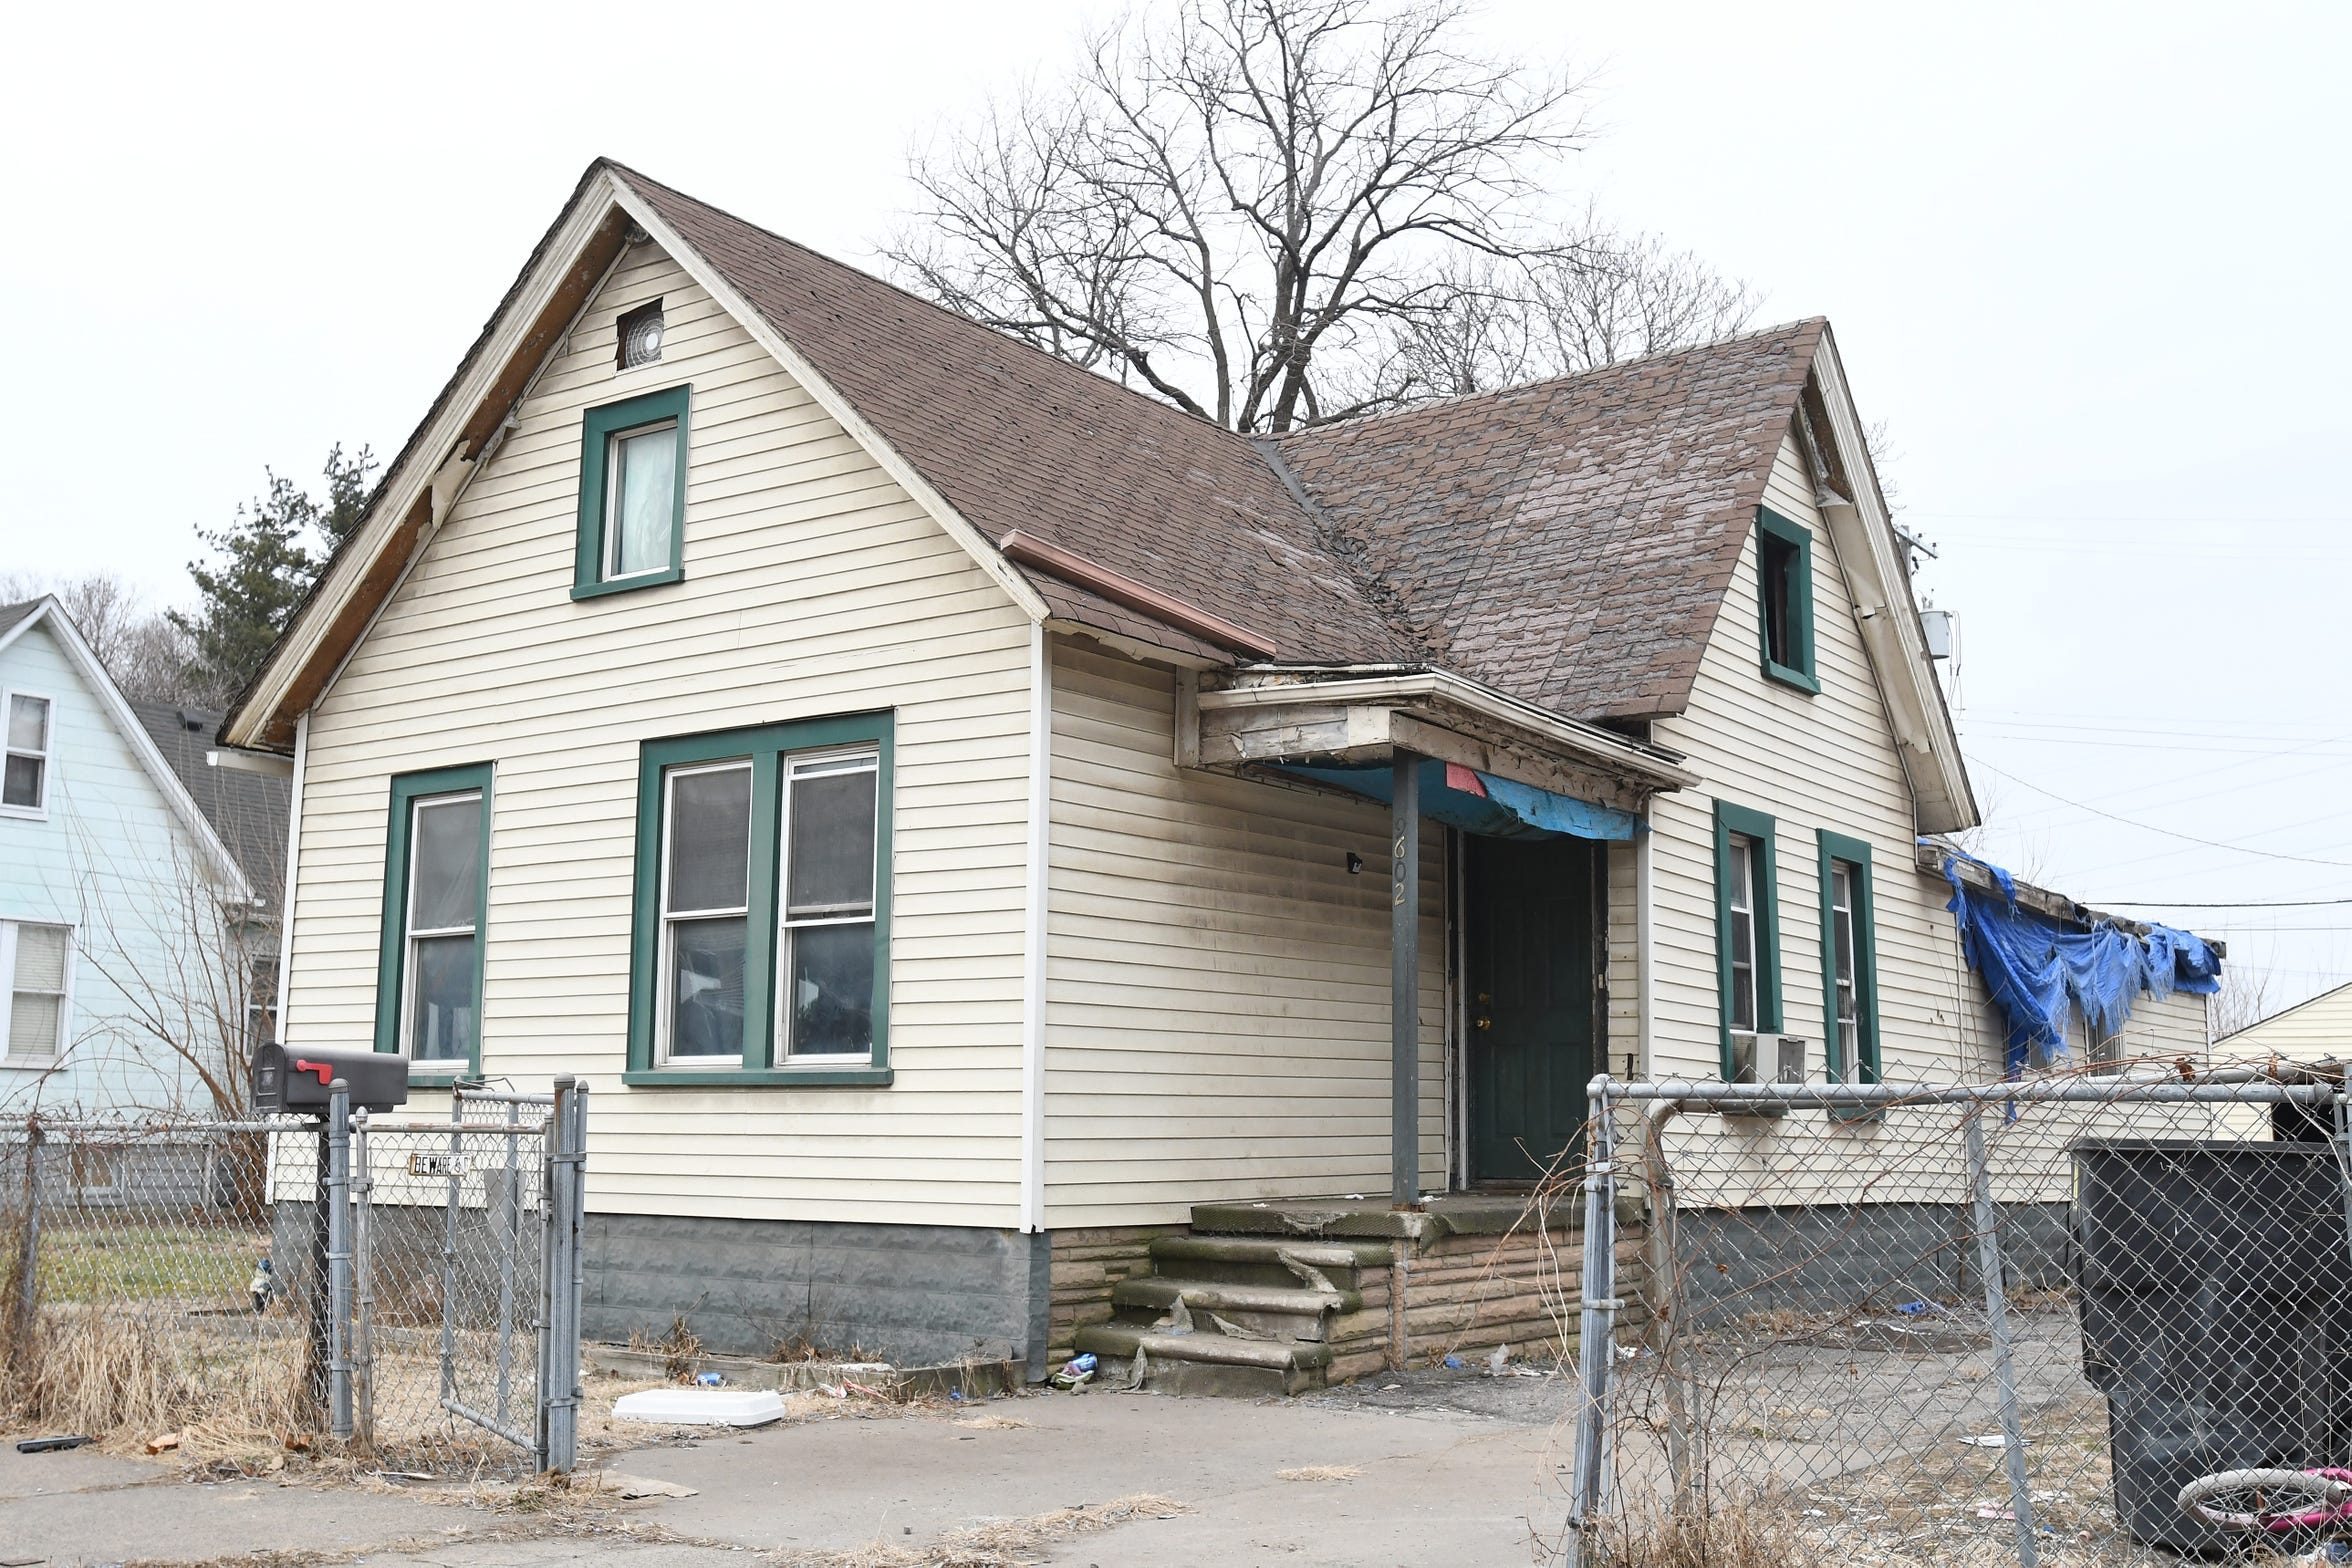 The family of eight lived in this 1901 home  on Melville in the Delray neighborhood of southwest Detroit.